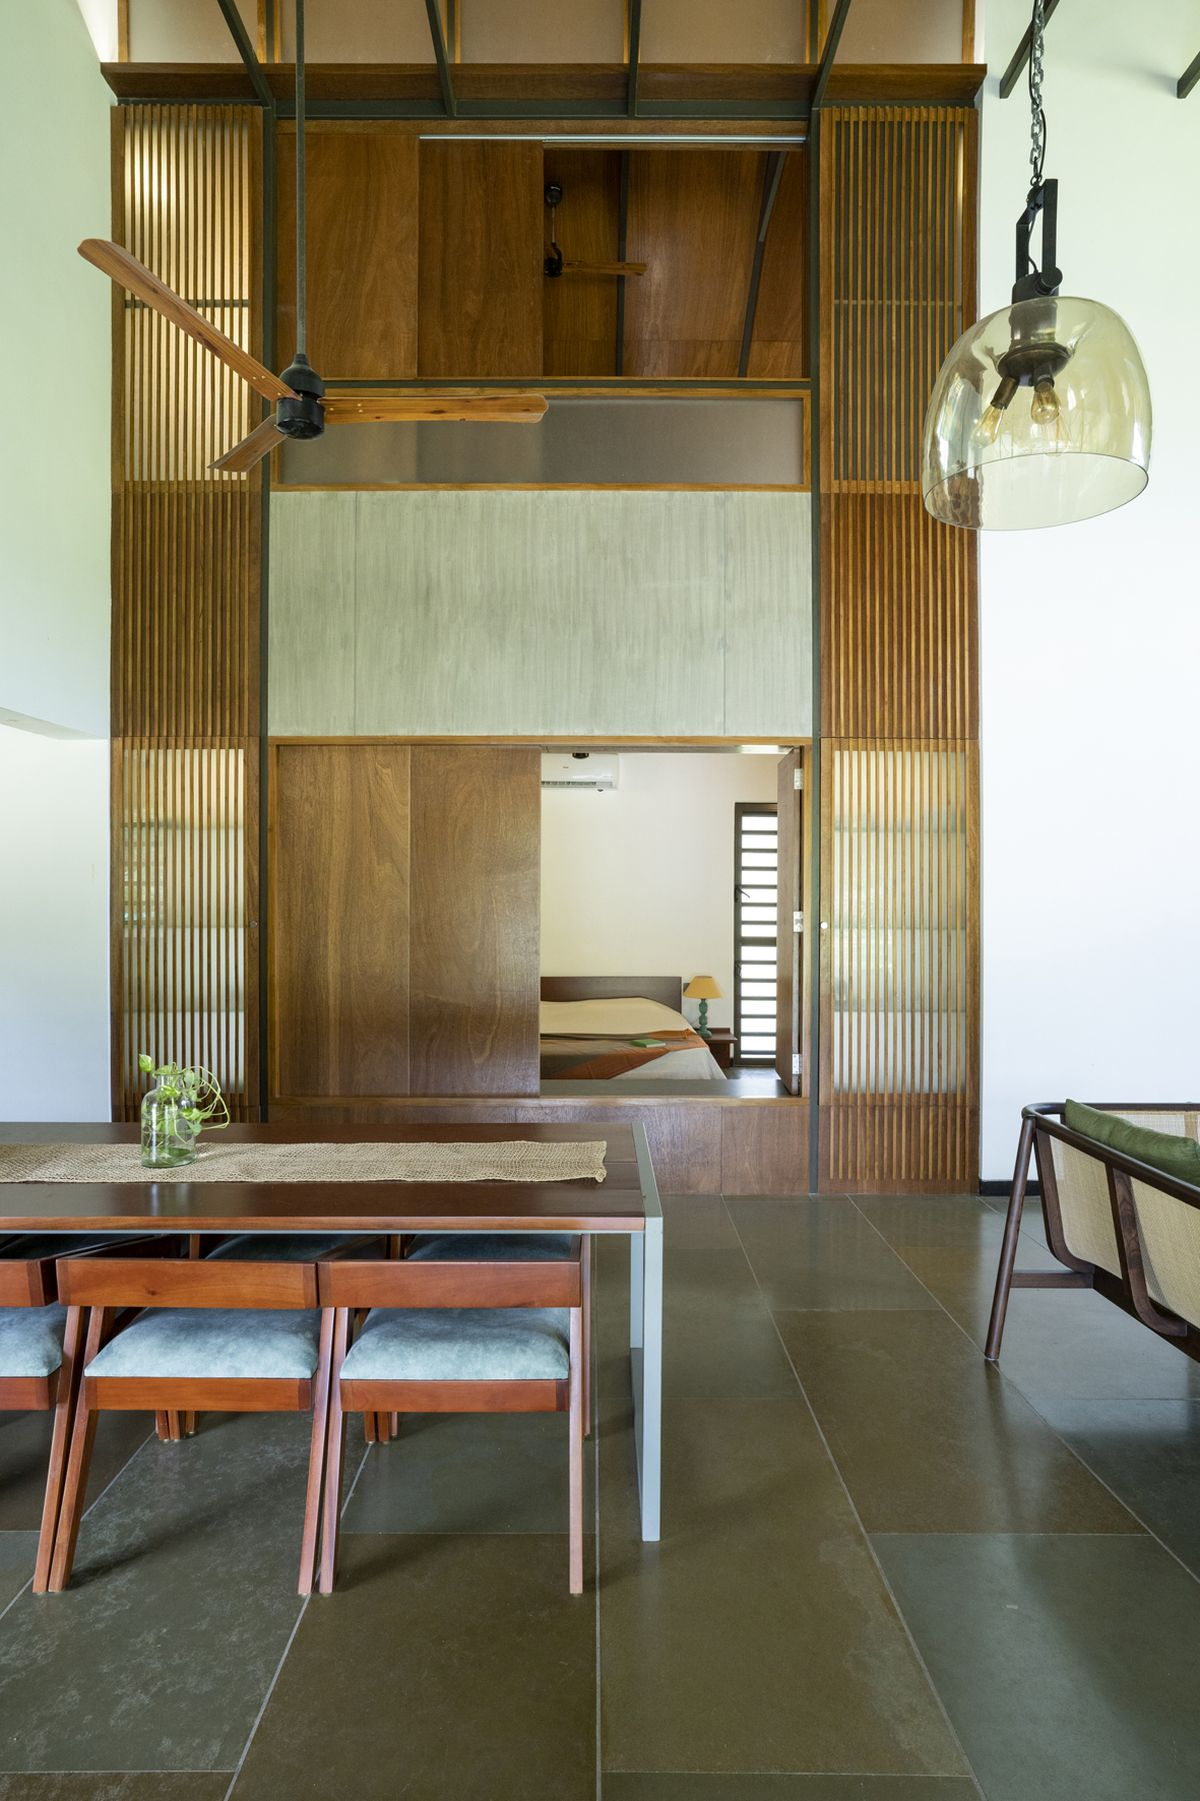 Dr Maani House 2020, at Koothattukulam, by RGB Architecture Studio 4